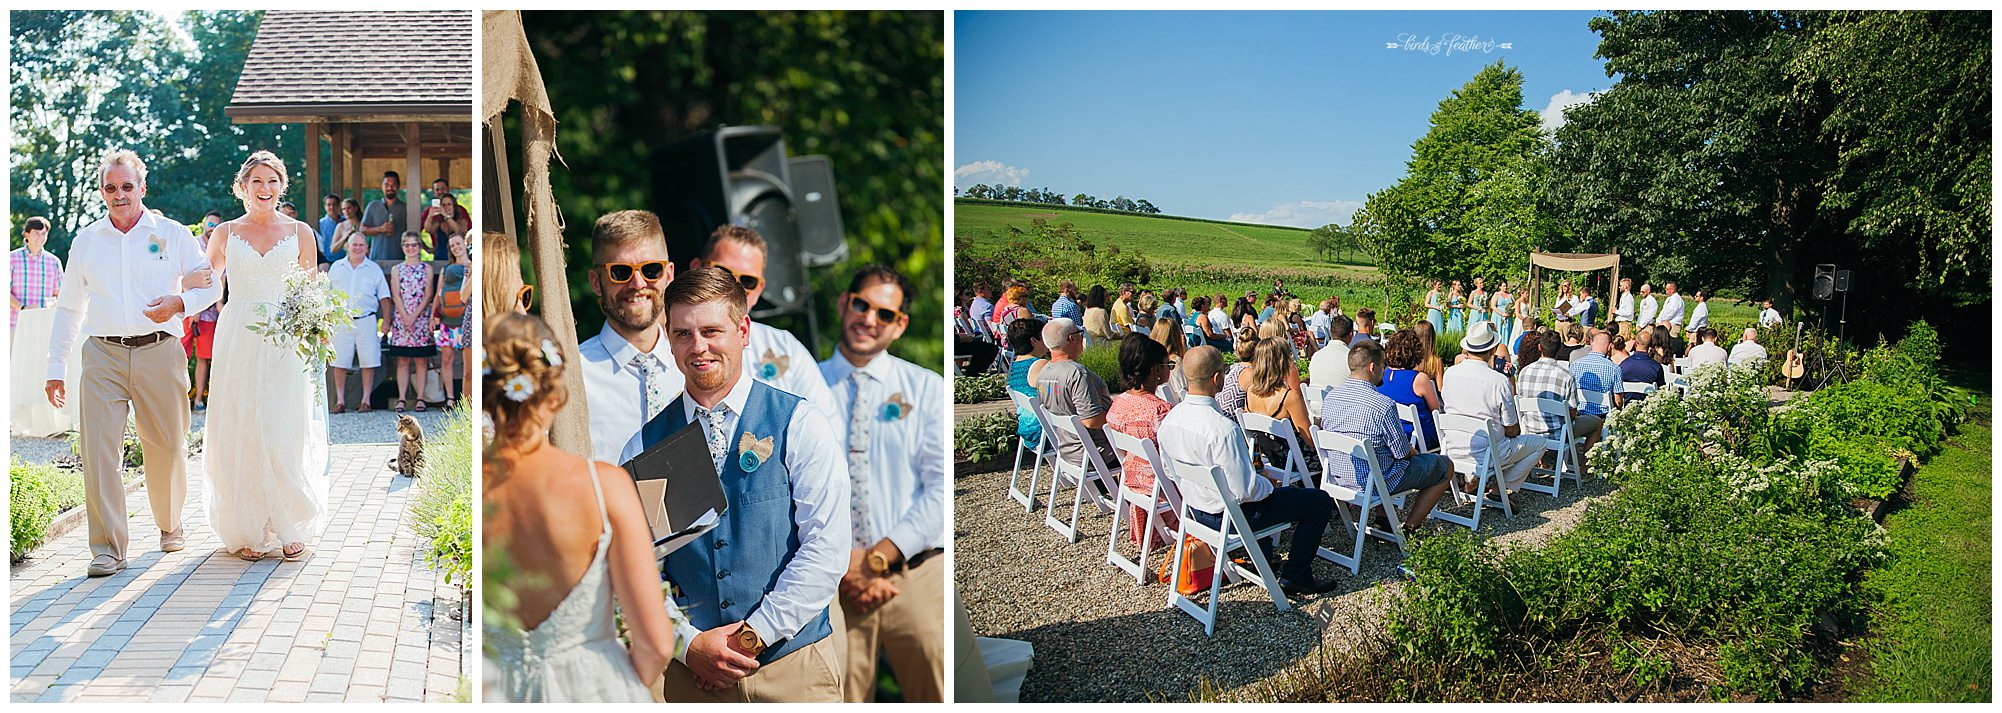 Birds of a Feather Photography Rodale Institute Kutztown Pa Wedding Photographer 27